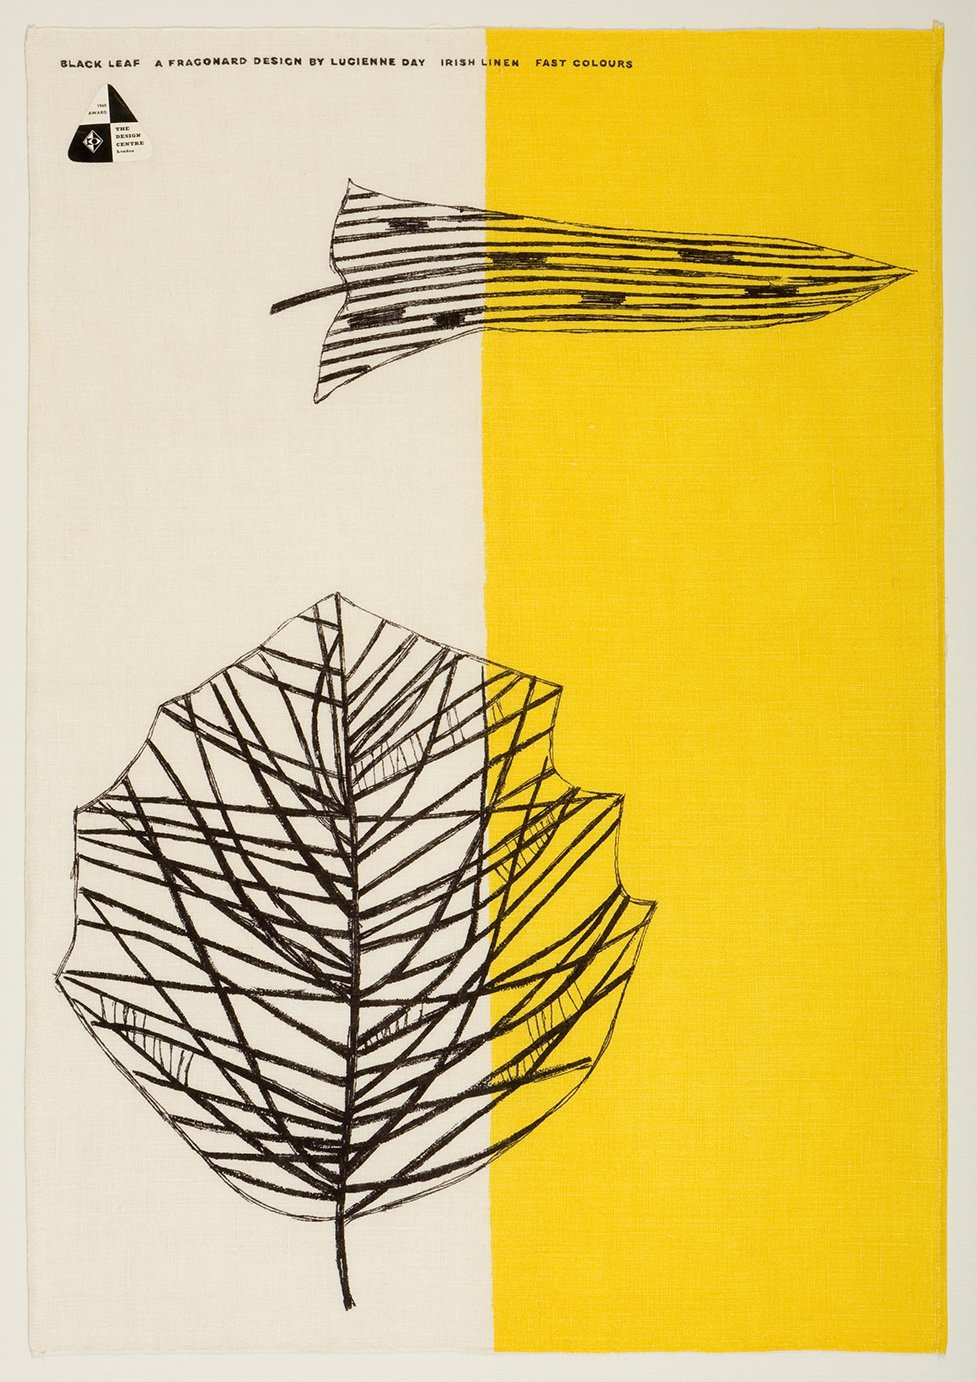 .Lucienne Day's Black Leaf tea towel for Thomas Somerset (1959) exemplifies her fascination with modern art and plant life. Image courtesy of The Robin & Lucienne Day Foundation. Collection of Jill A. Wiltse and H. Kirk Brown III, Denver.  Photo 5 of 5 in All in a Day's Work